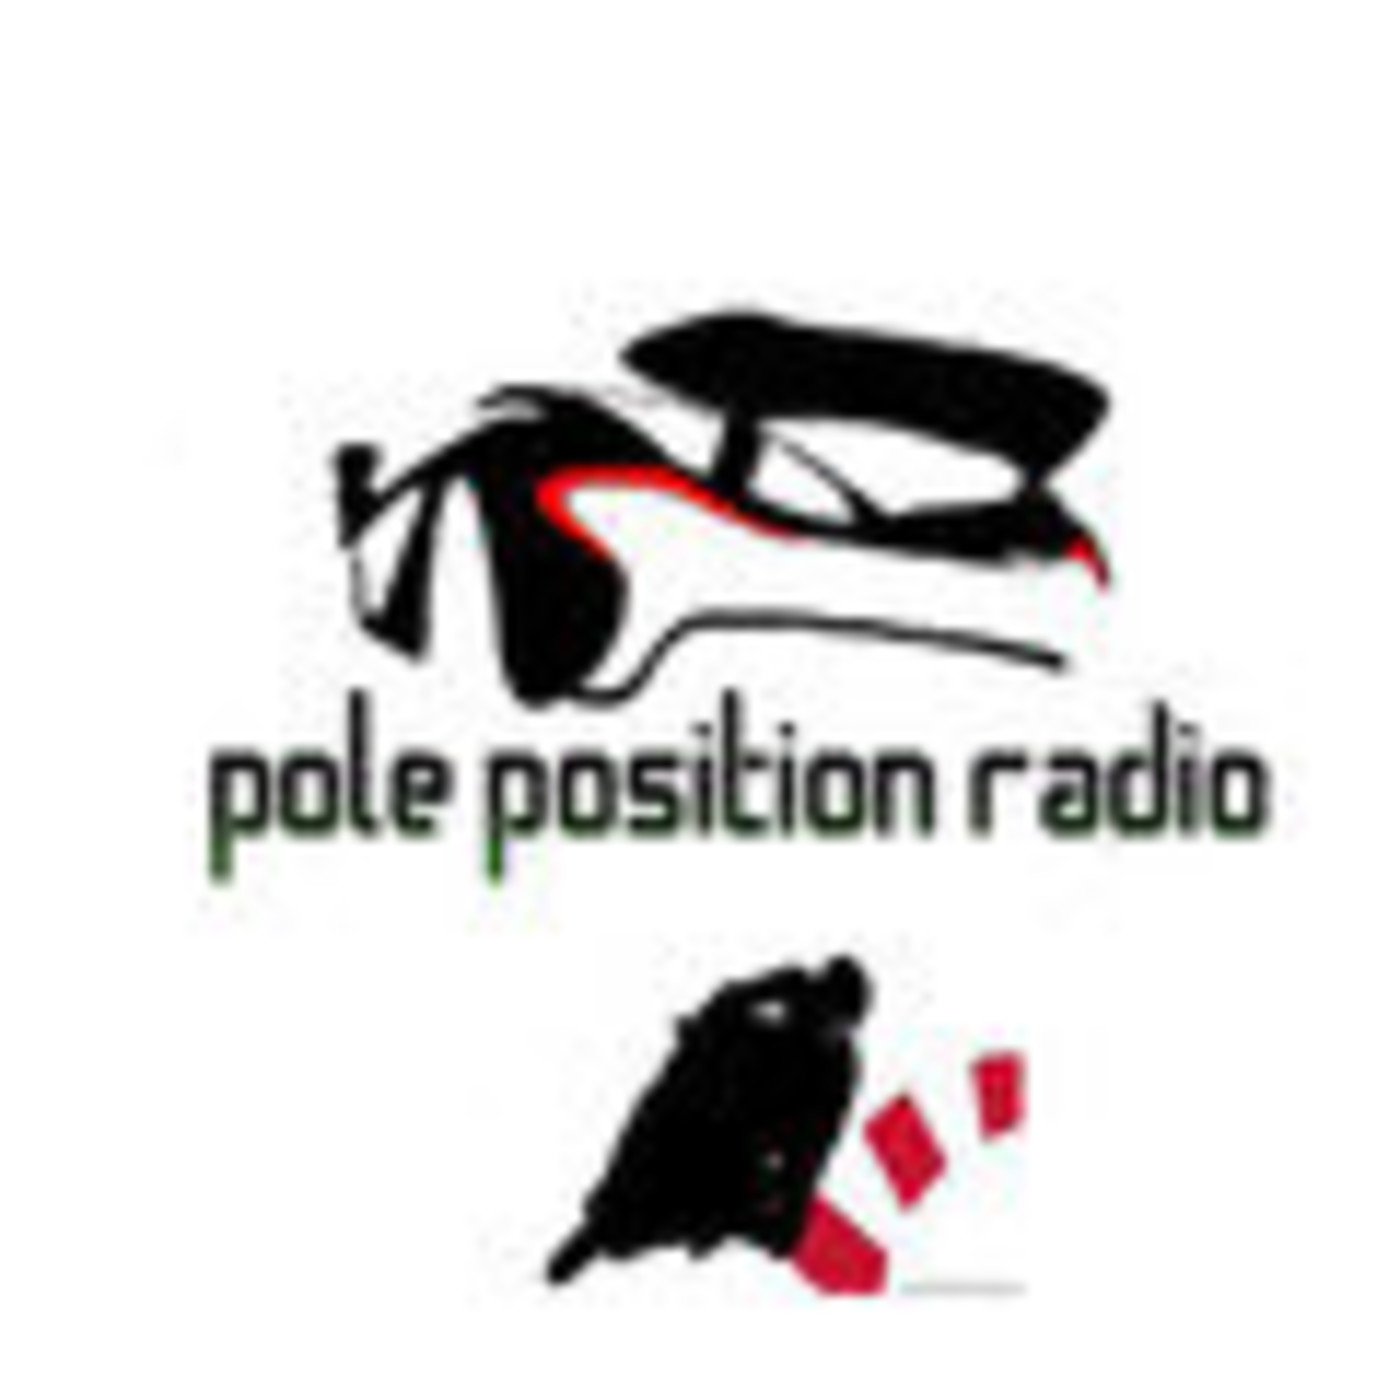 Pole Position Radio